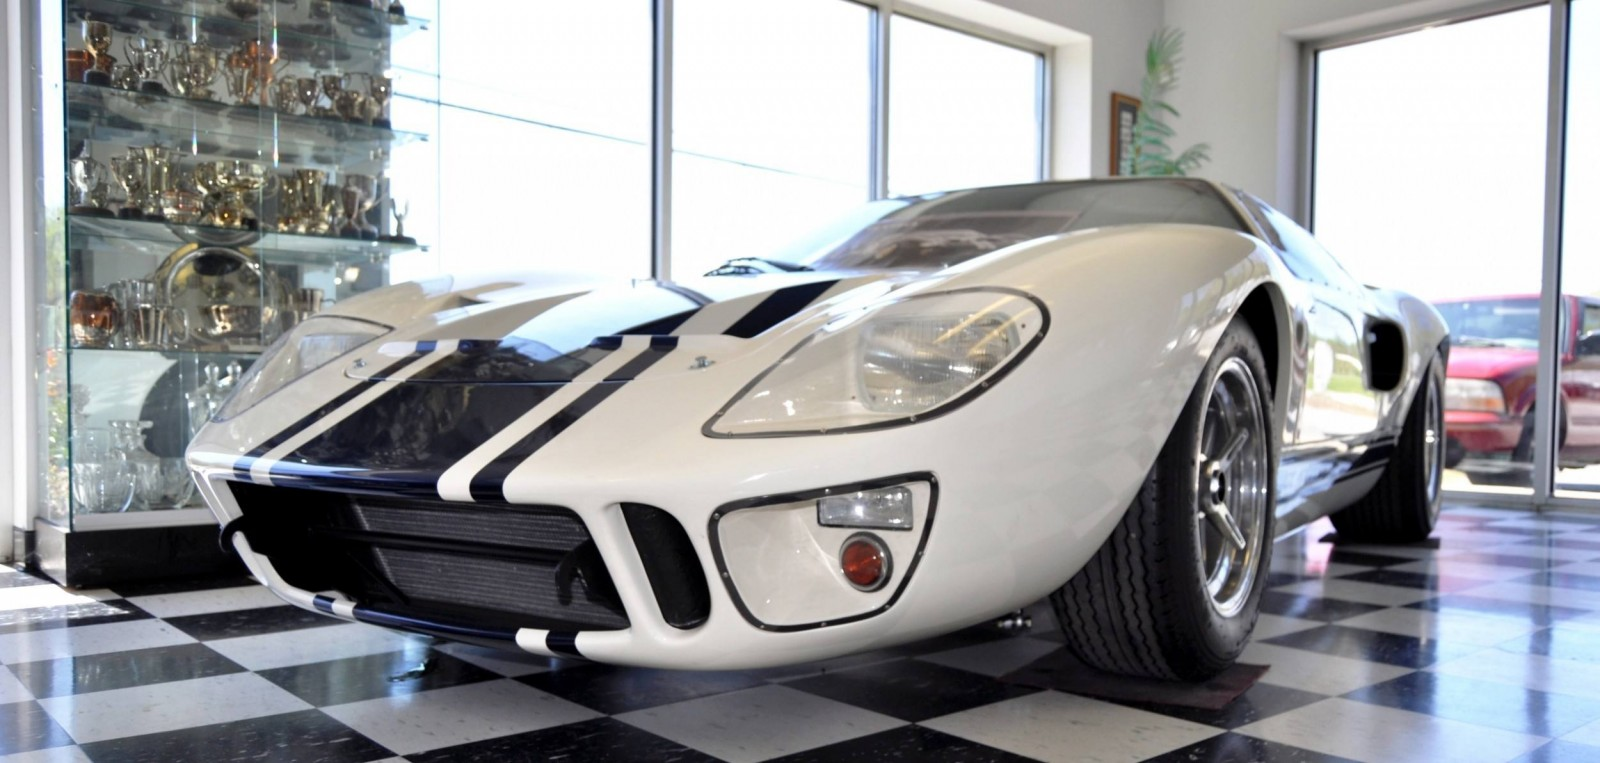 Touring the Olthoff Racing Dream Factory - Superformance GT40s and Cobras Galore 41